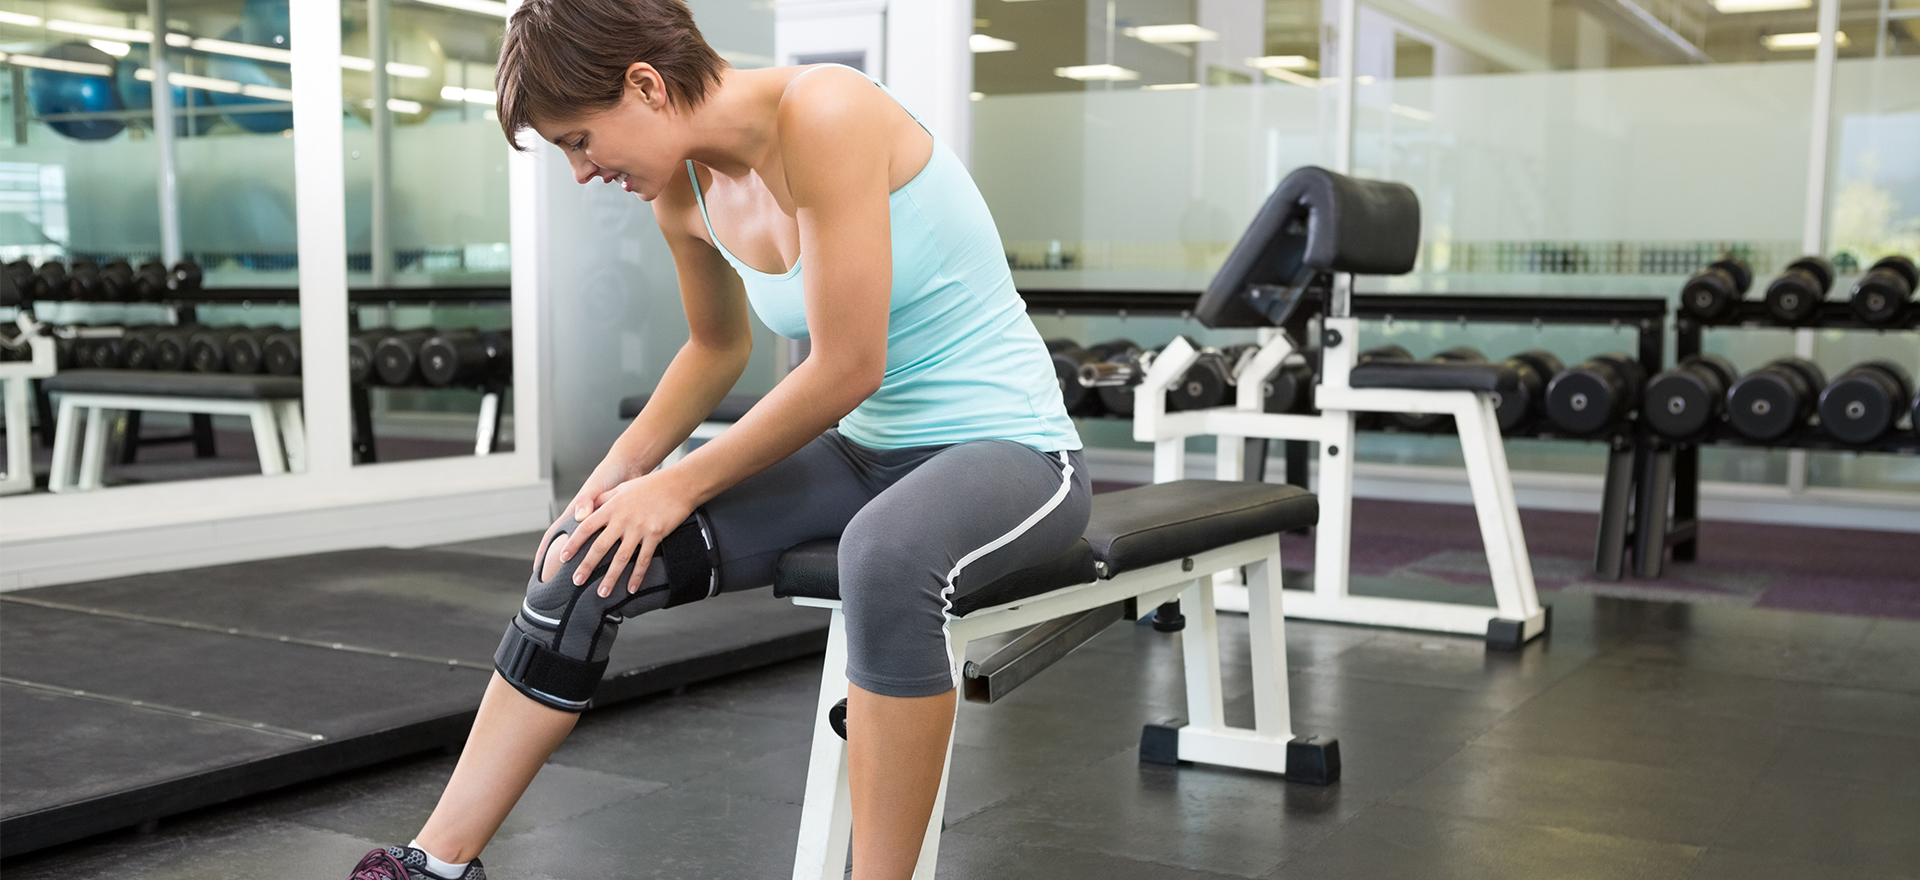 woman tending to her knee brace at the gym | pacific medical supply salem